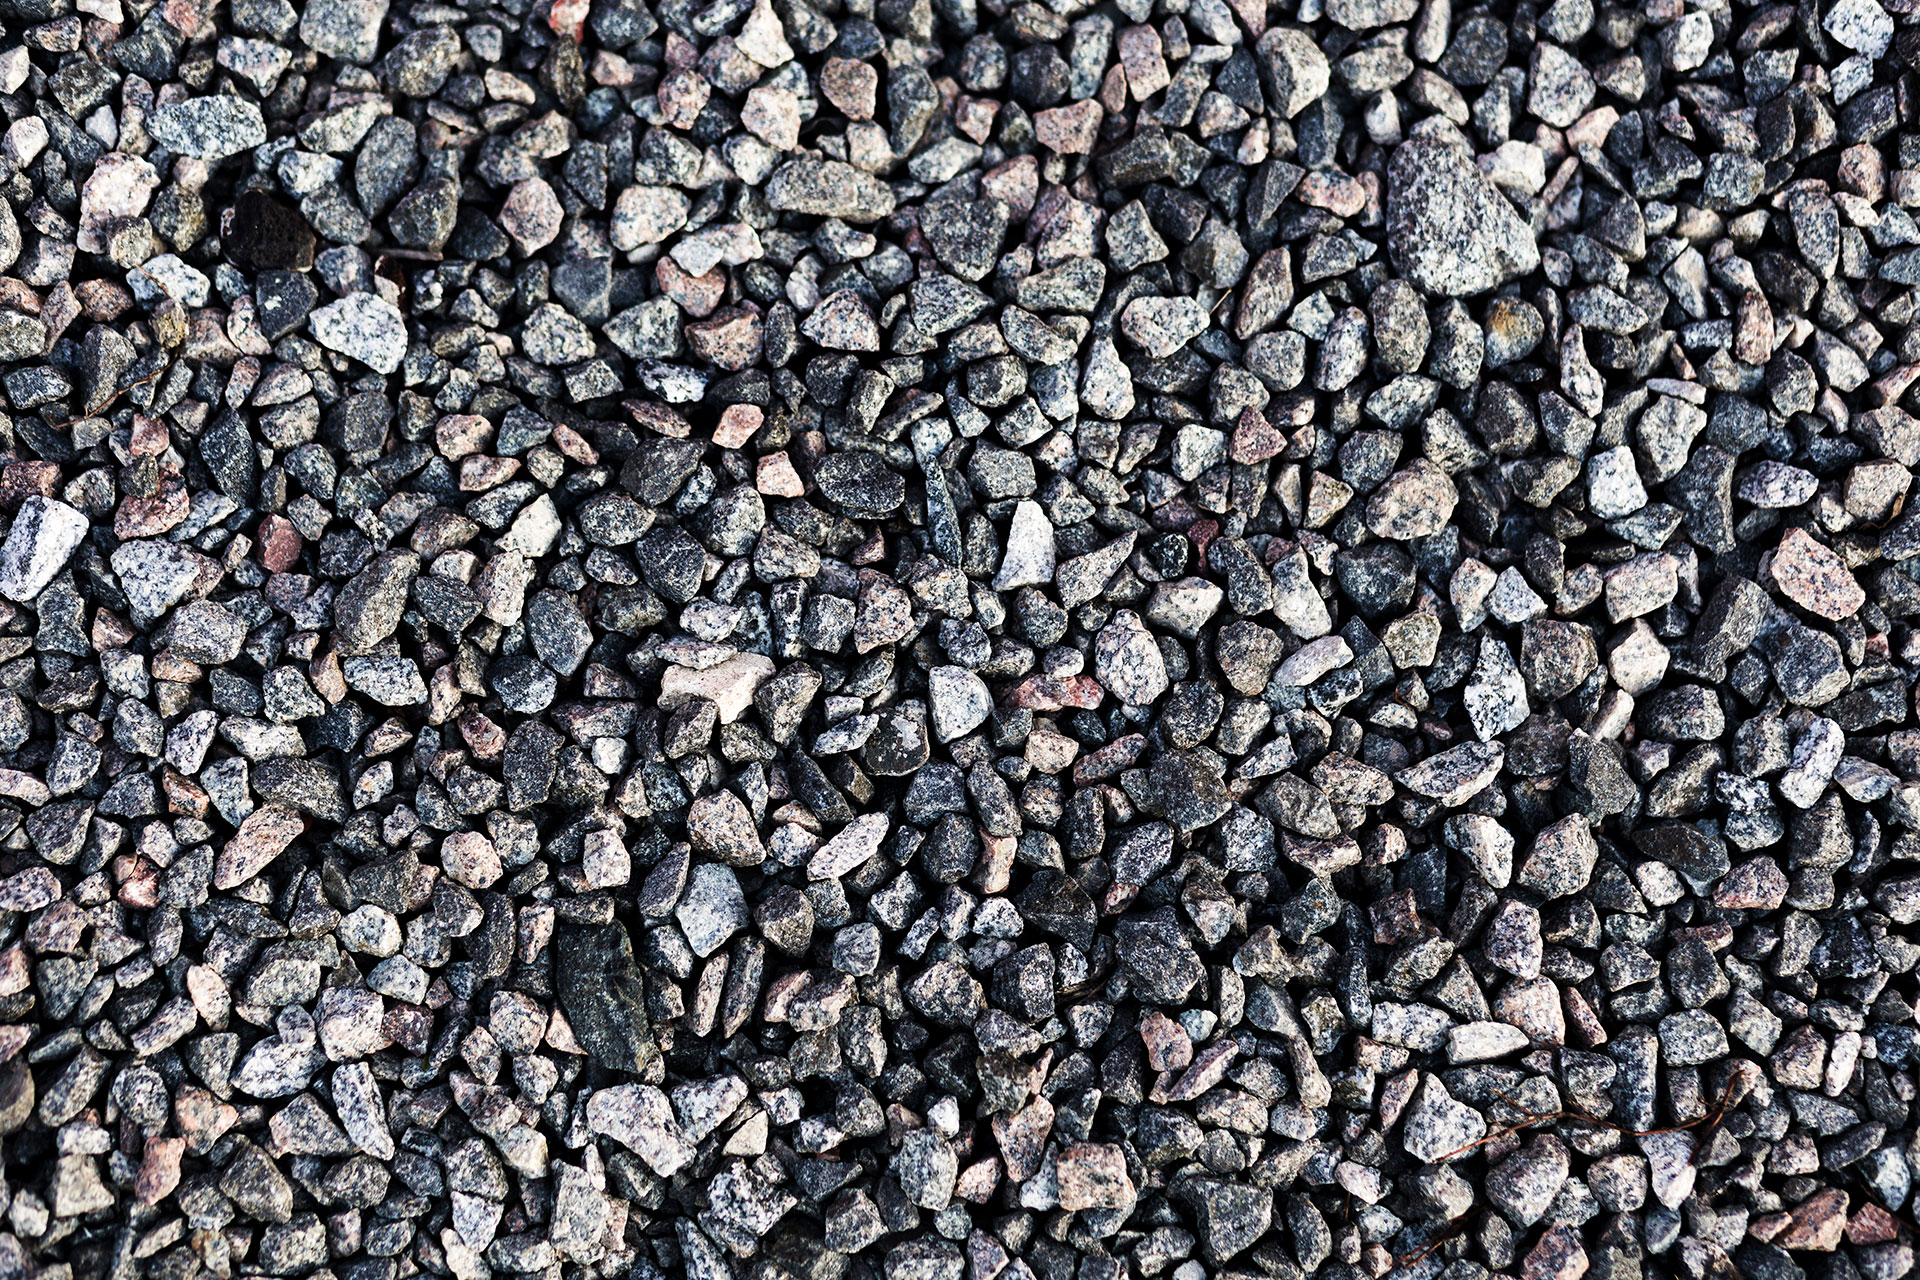 Aggregates for use in Concrete Applications